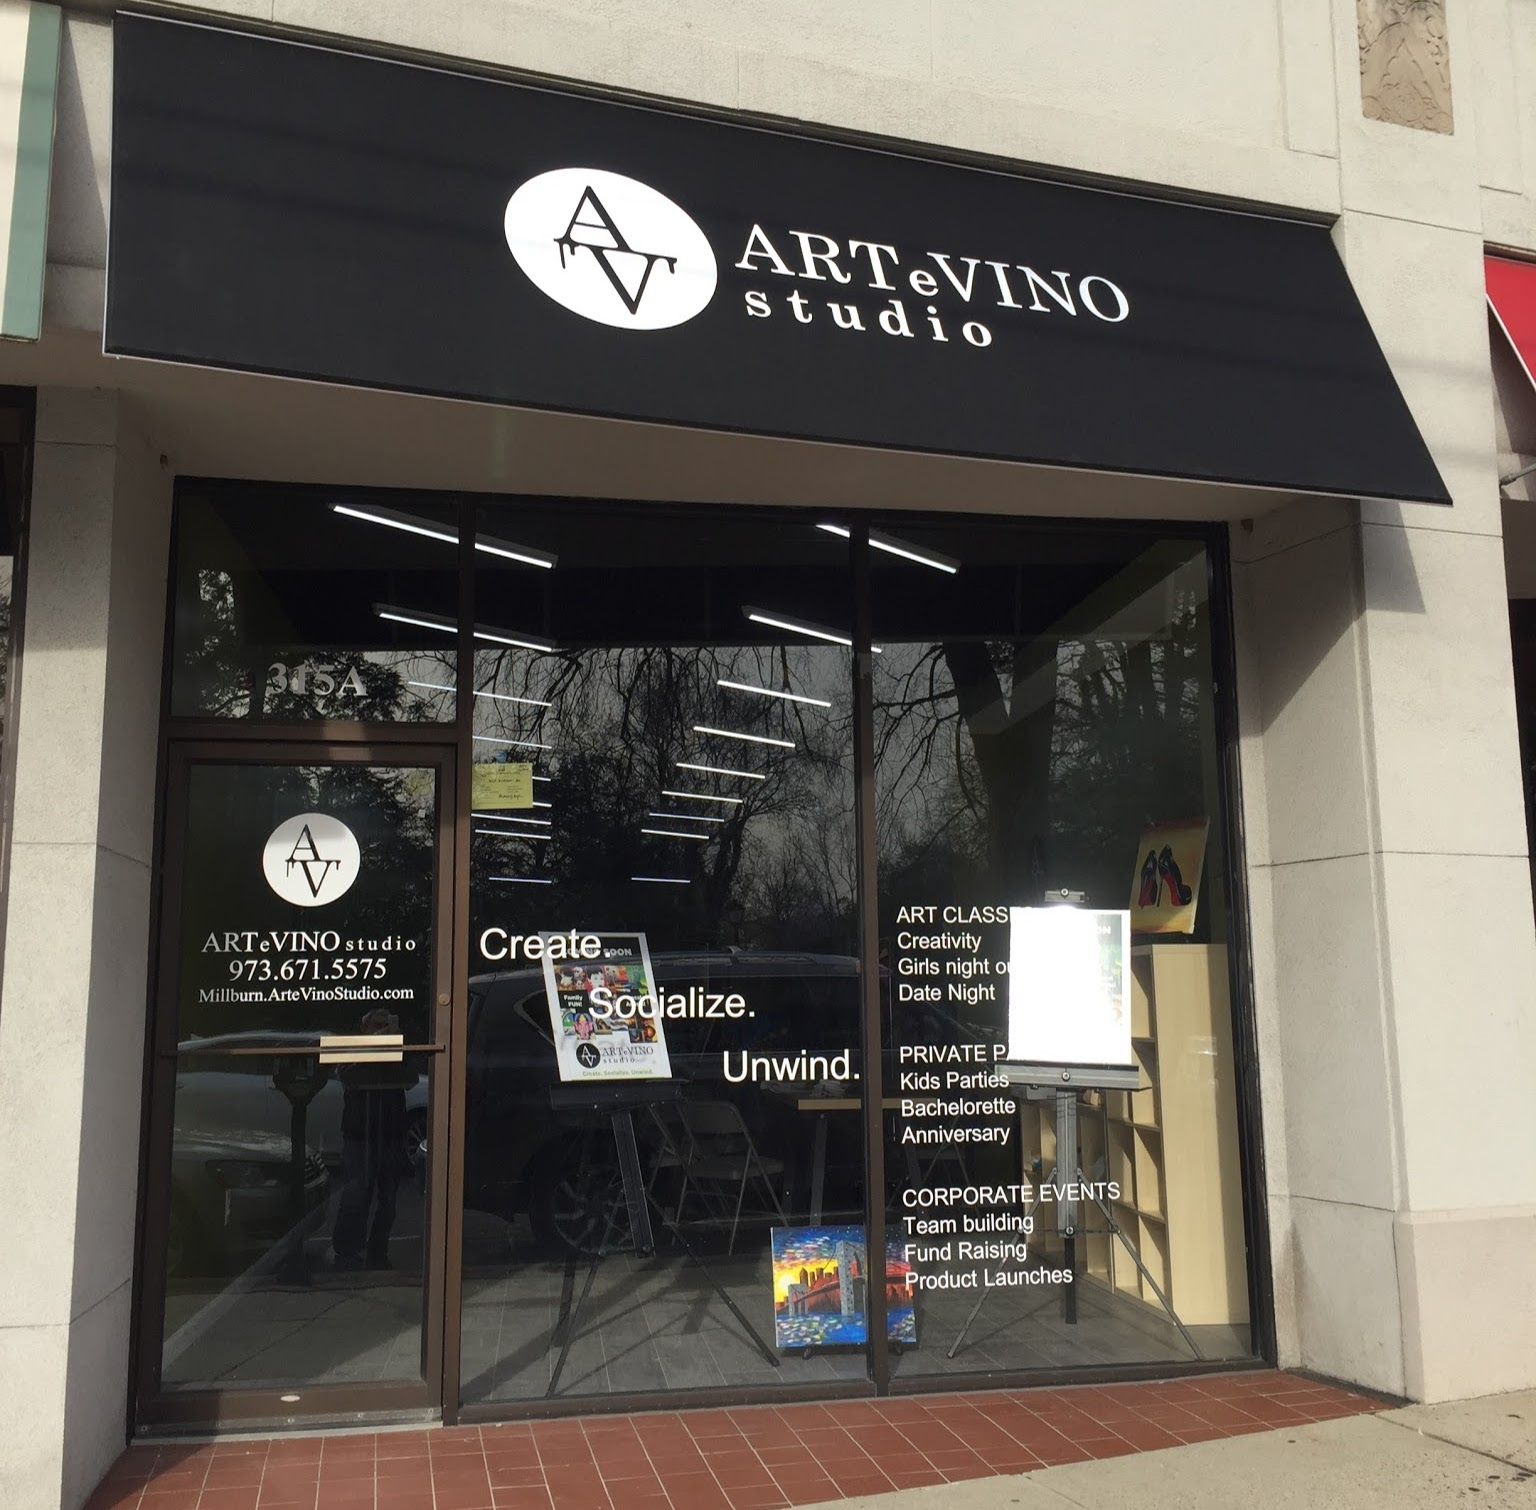 Artevino Llc Artevino Studio Millburn In Essex County City Explore Before You Go